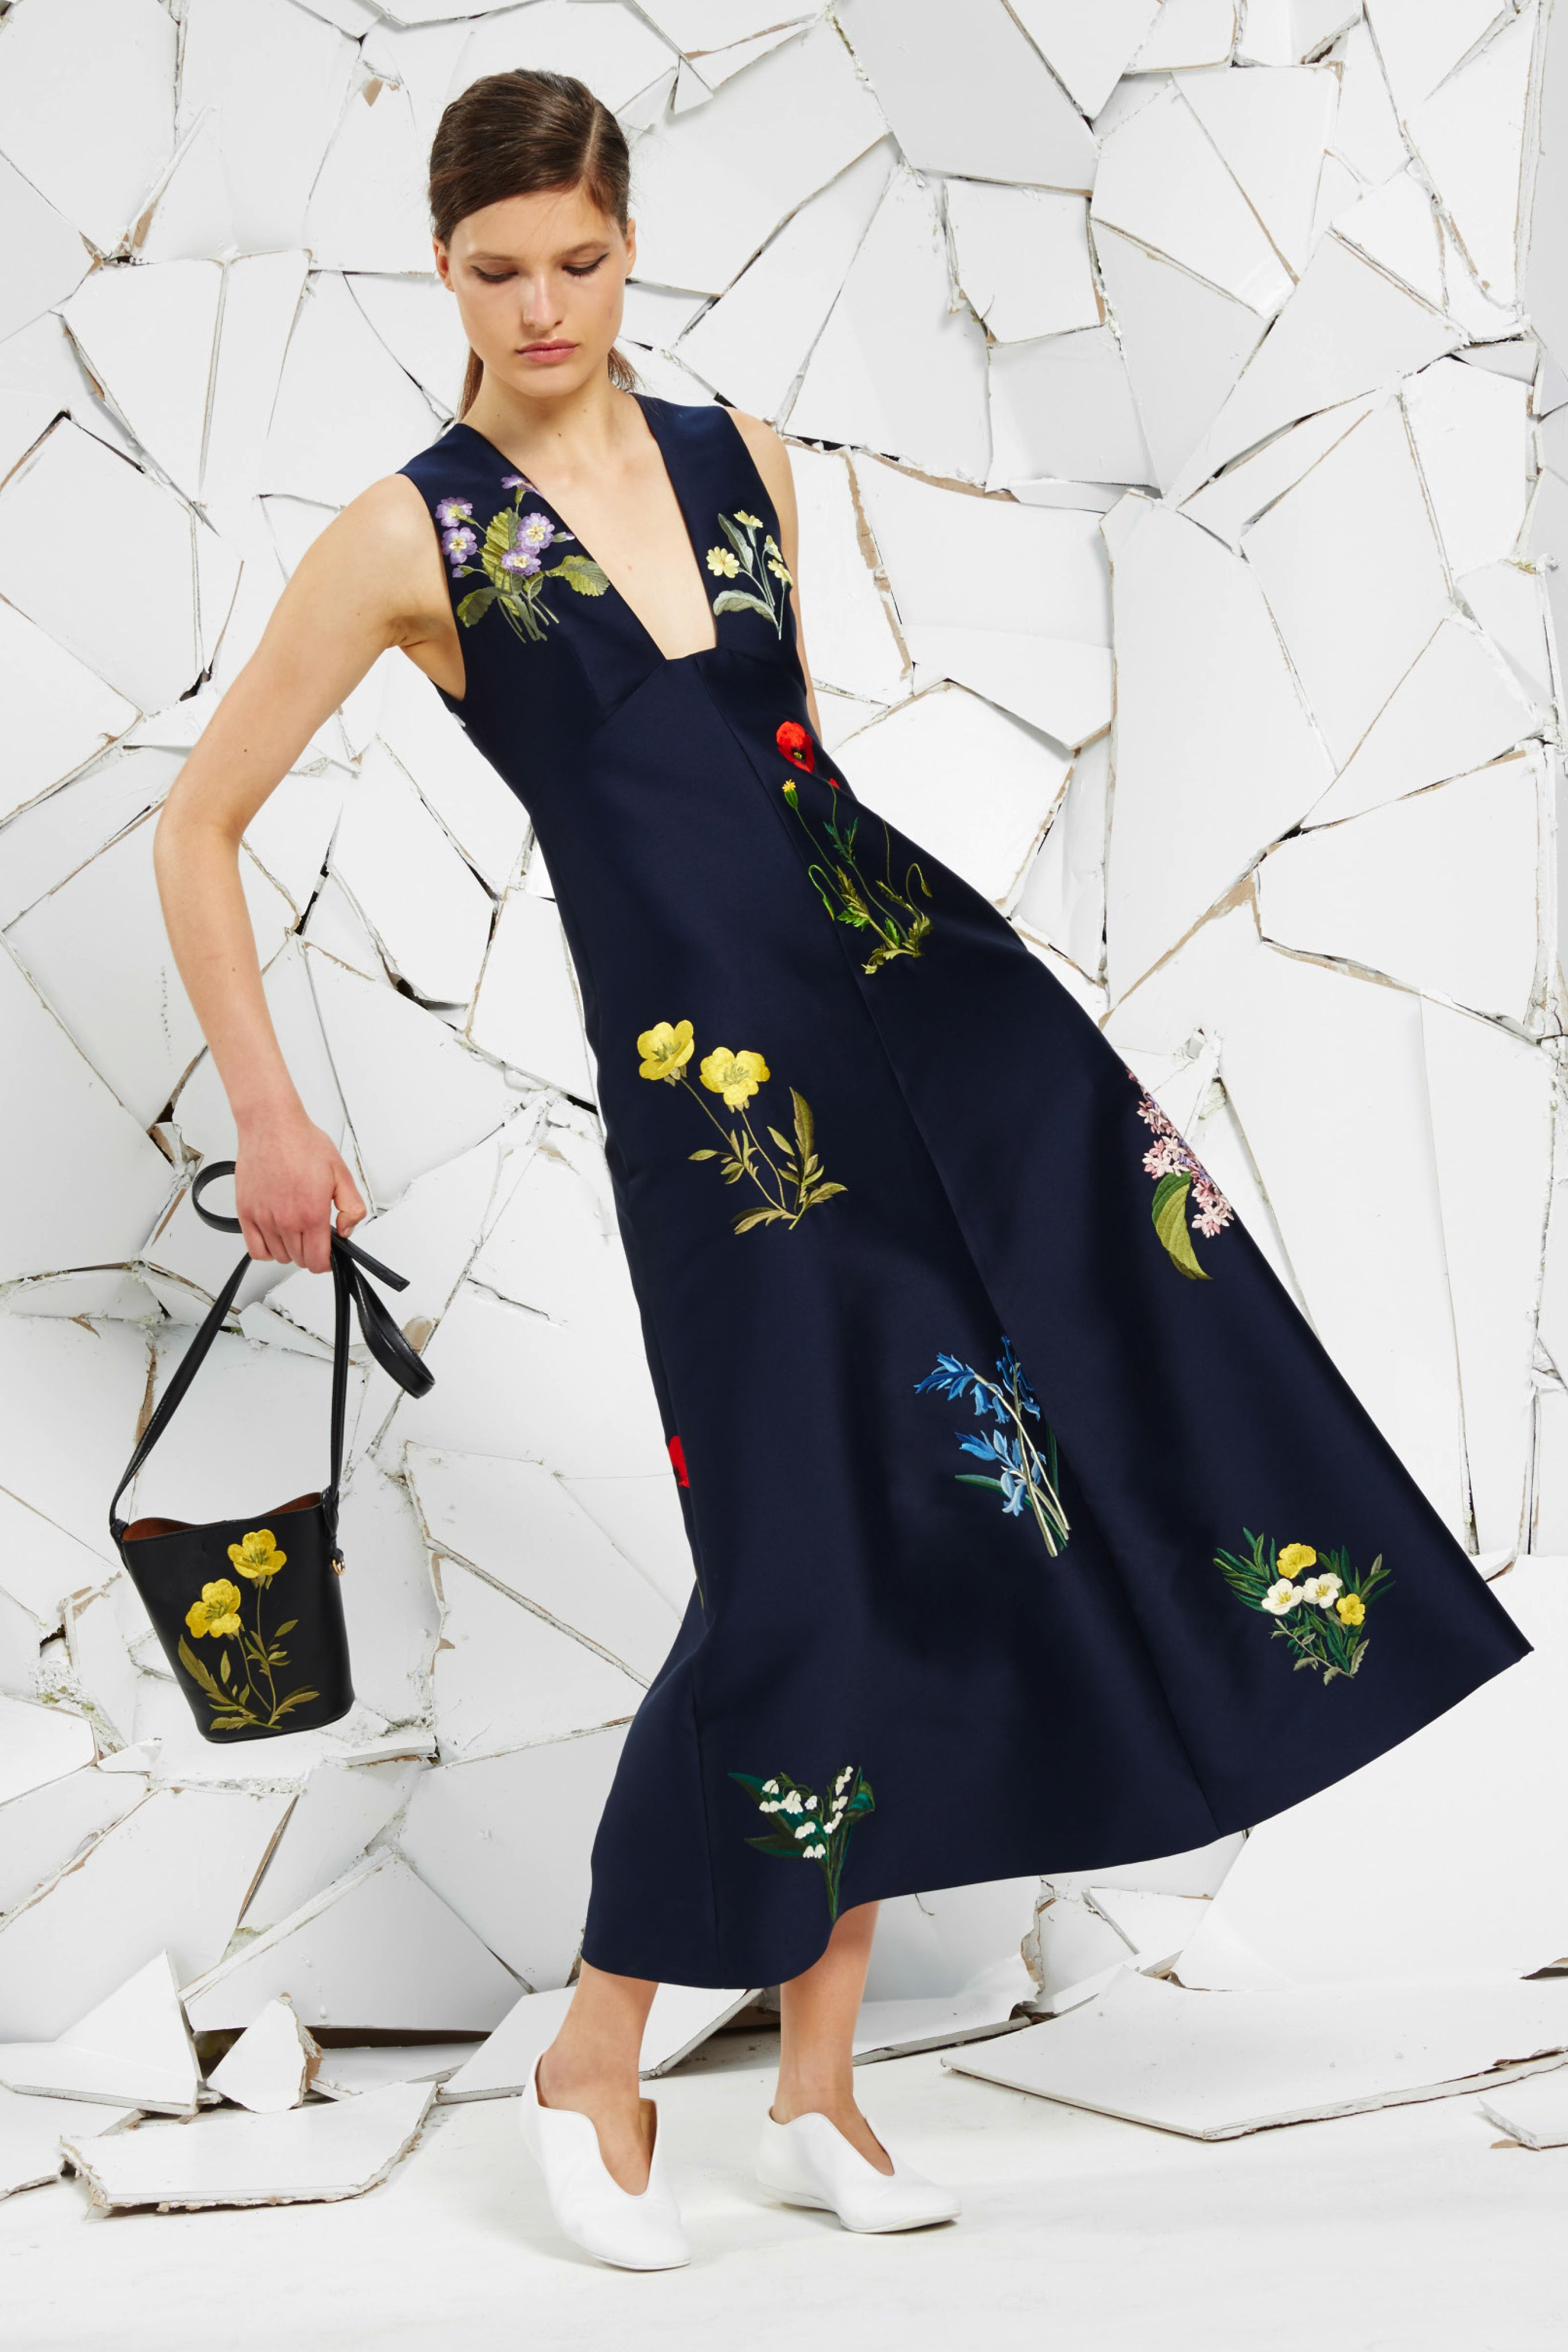 Ink Cotton Duchesse Kaitlyn Dress With Botanical Threadwork Embroidery, White Alter Nappa Ballerina  and Black Alter Nappa Botanical Embroidery Bag